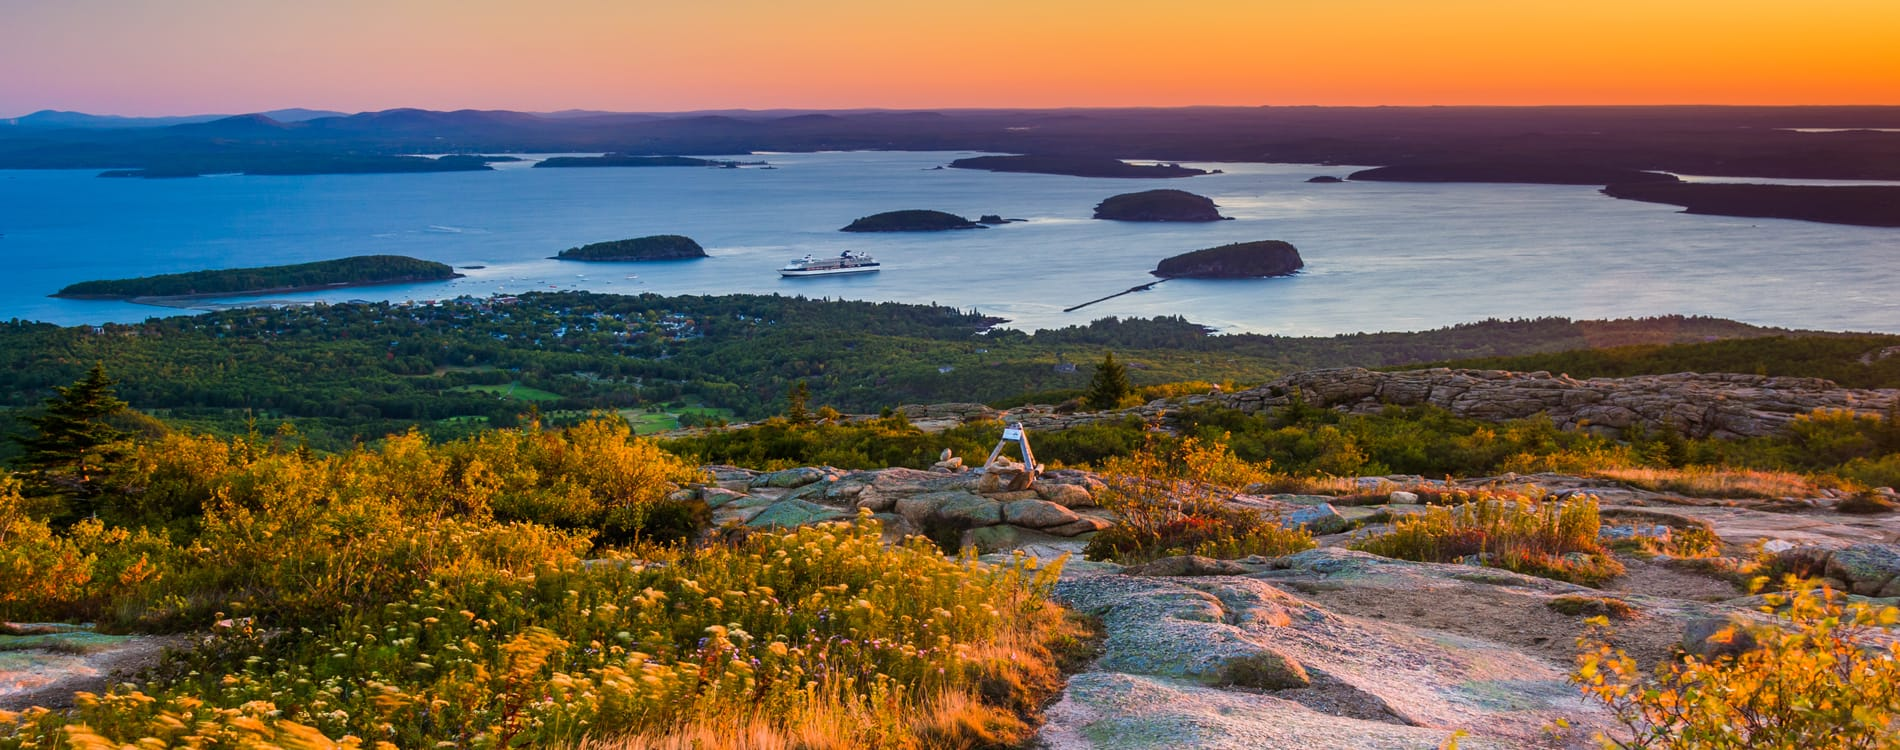 Acadia National Park - Sunrise on Cadillac Mountain